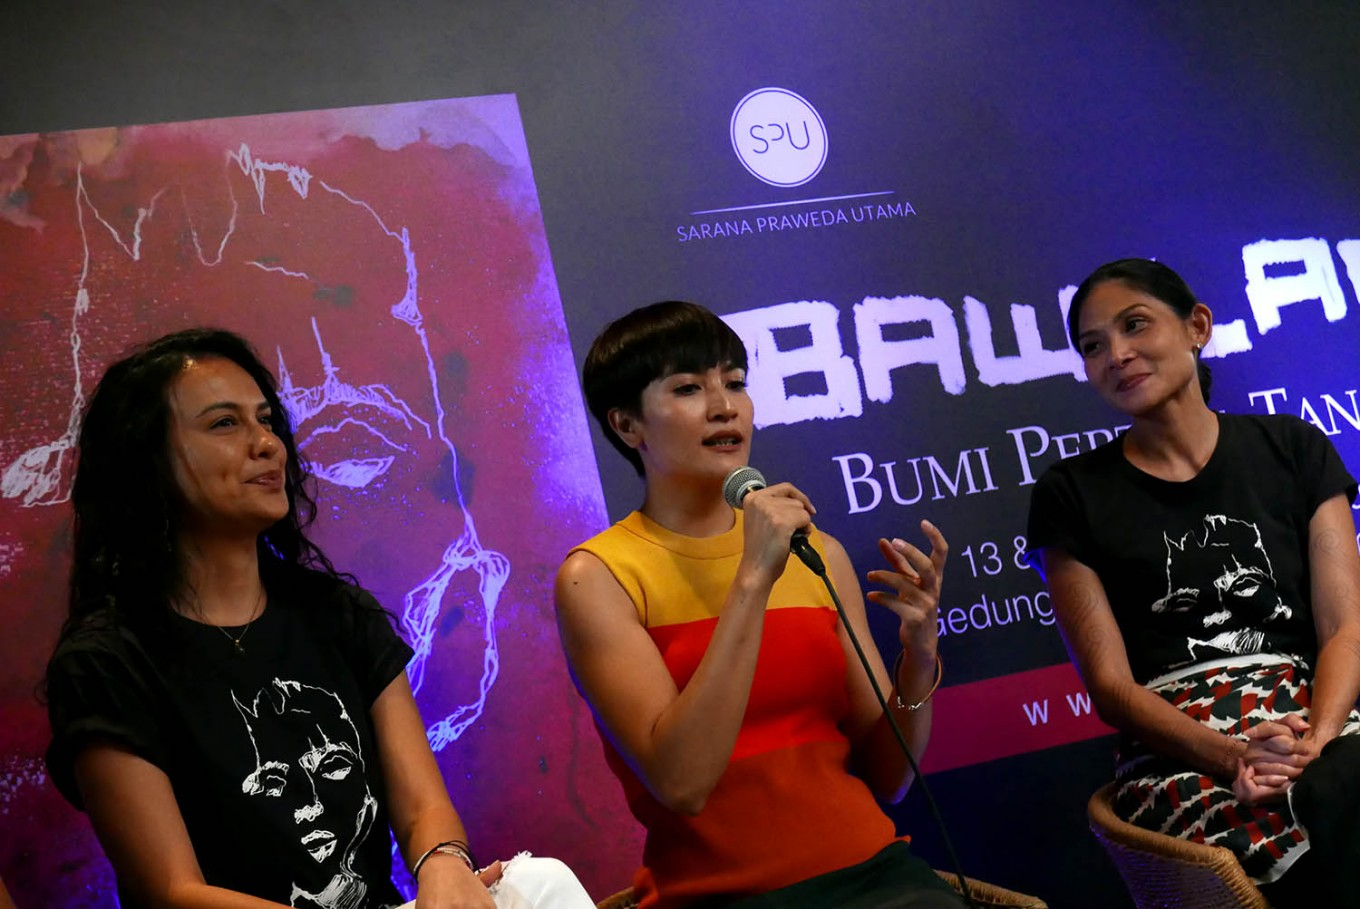 'Bawi Lamus' play to present Dayak culture on stage